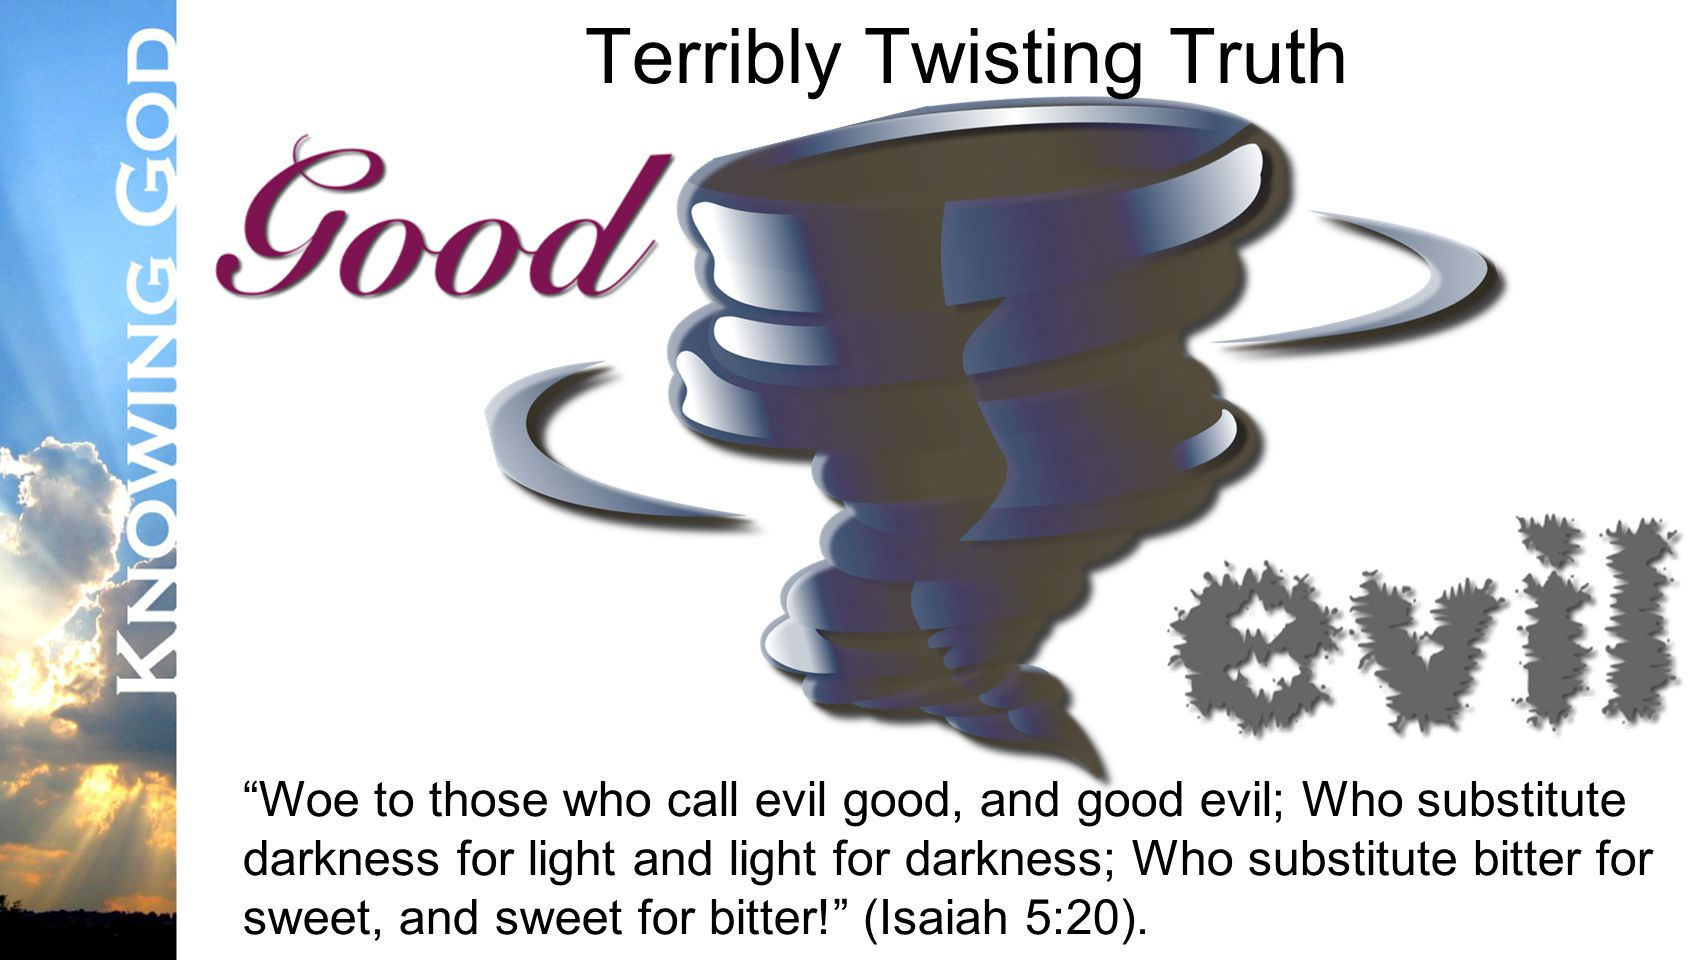 Lesson #3 Terribly Twisting Truth Woe to those who call evil good, and good evil; Who substitute darkness for light and light for darkness; Who substitute bitter for sweet, and sweet for bitter! (Isaiah 5:20).